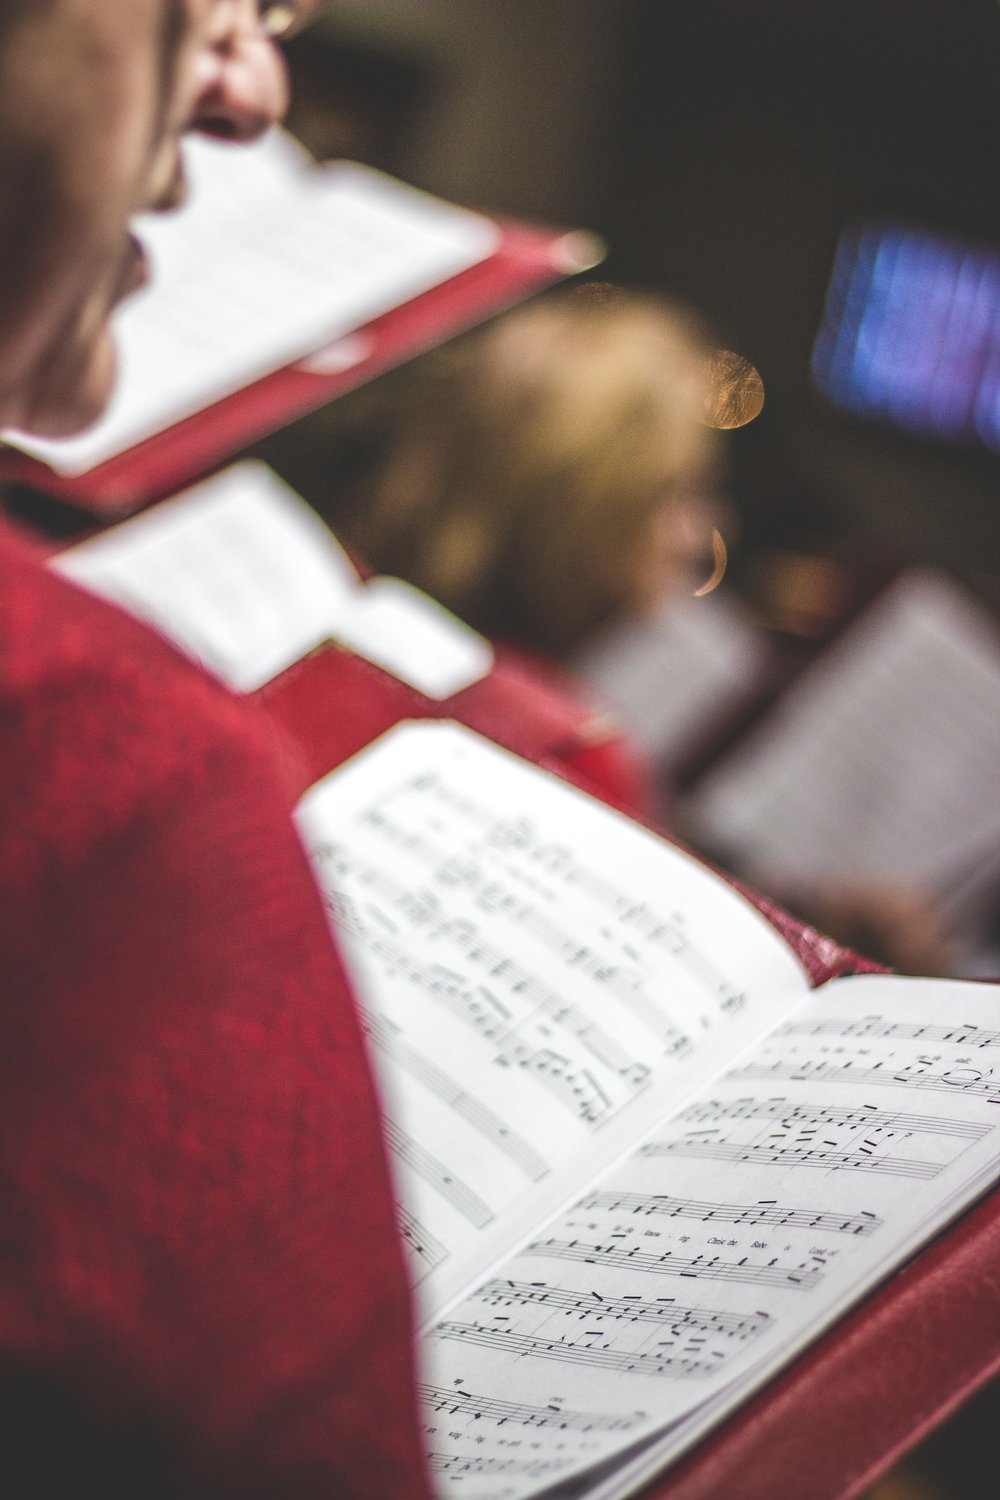 Manliness and Church Music - Not Mutually Exclusive